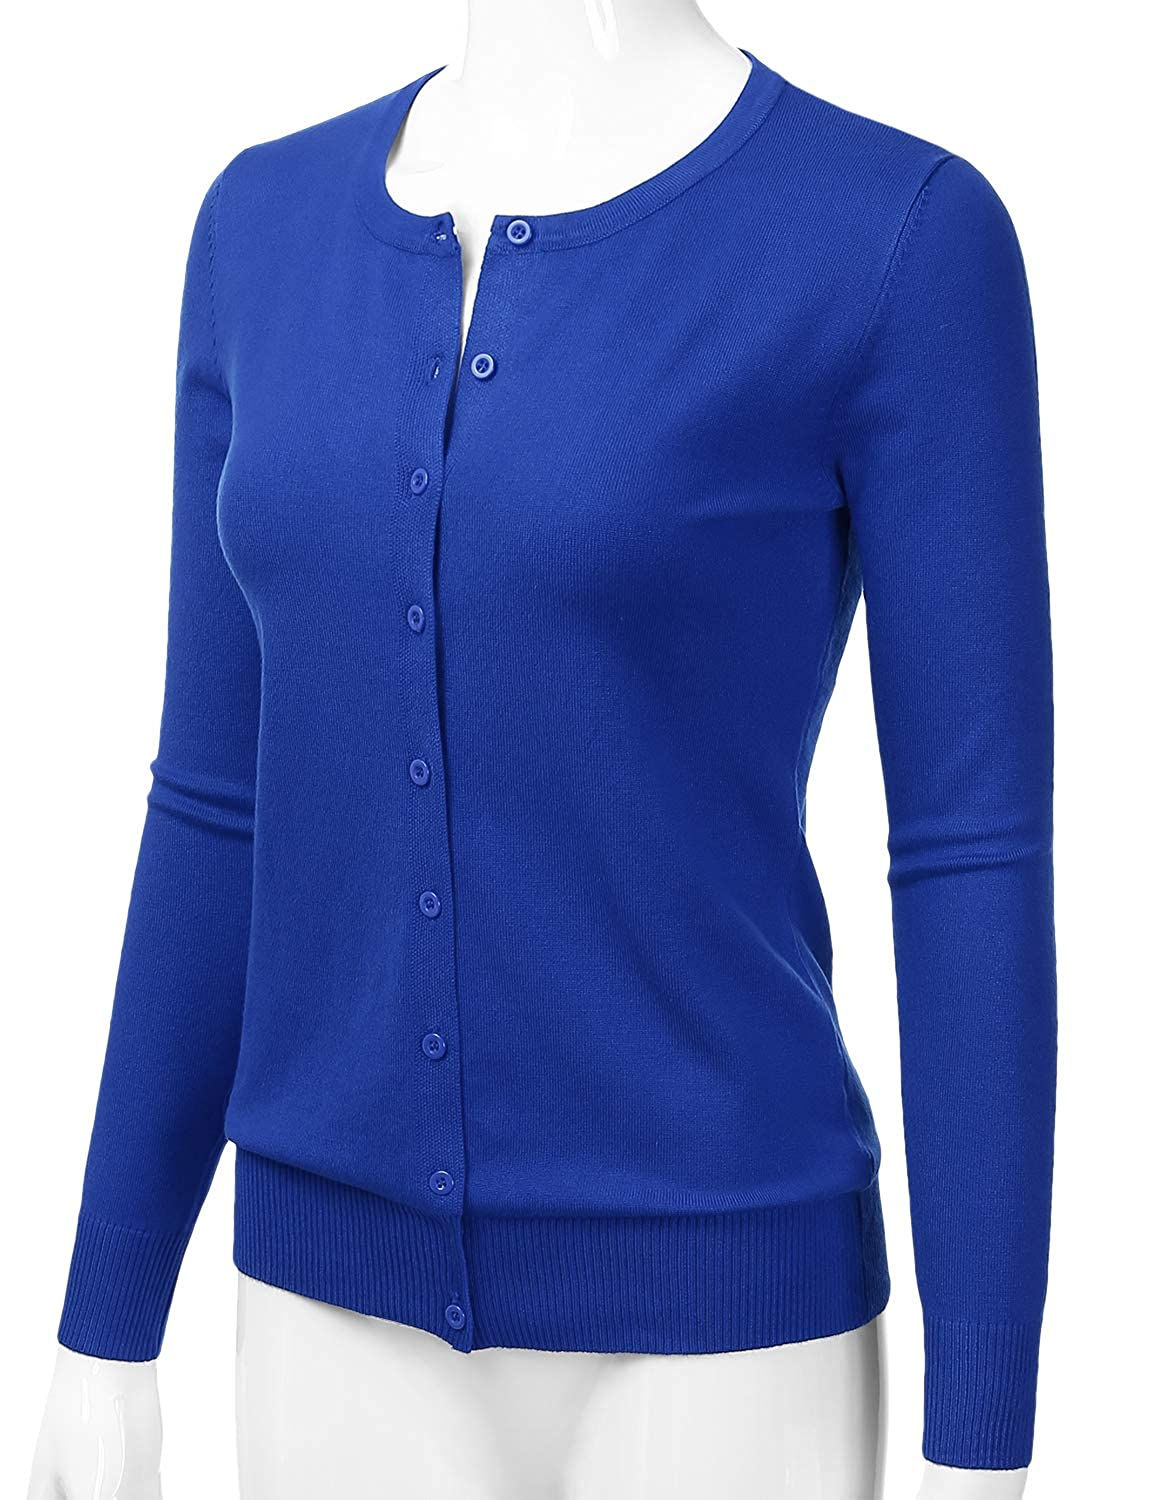 LALABEE Womens Crewneck Long Sleeve Button Down Knit Cardigan Sweater S-XL